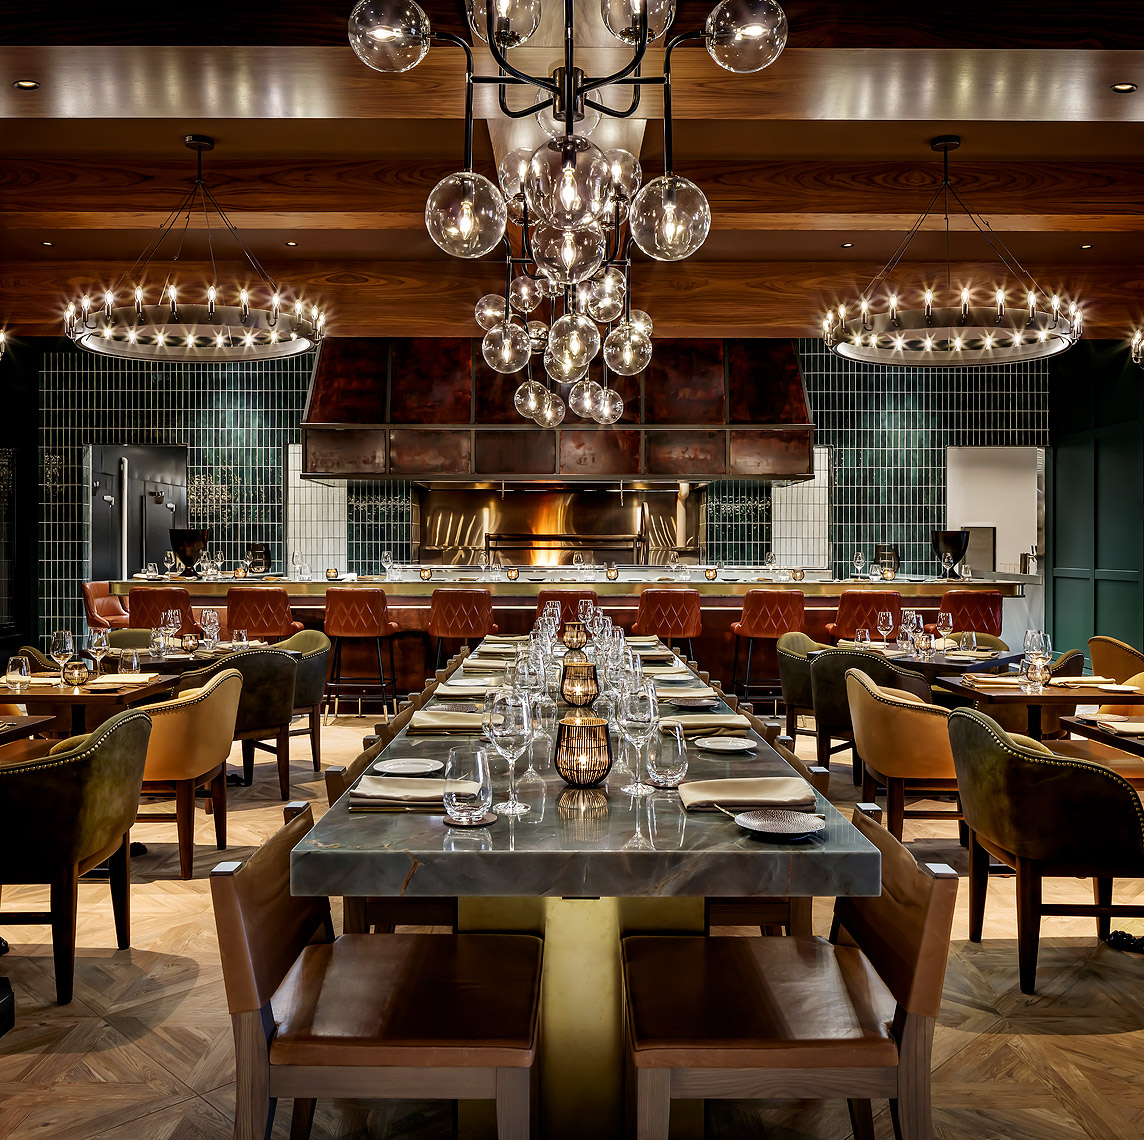 Braven Restaurant at the JW Marriott Edmonton Hotel, Canada